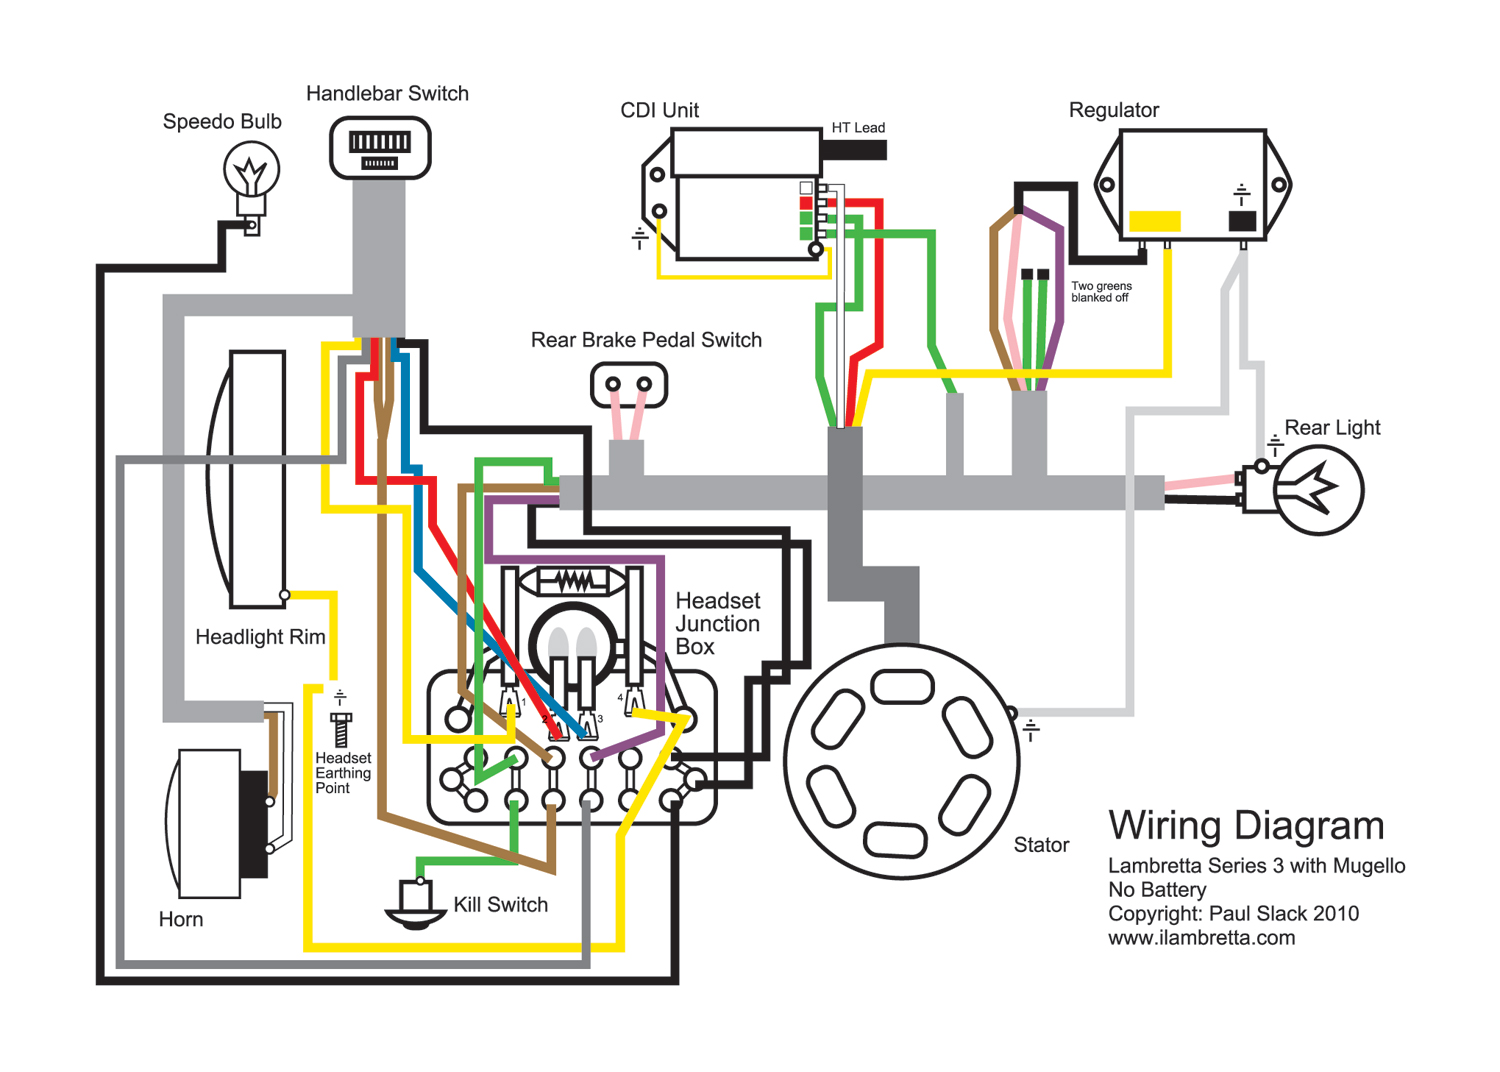 50cc Gy6 Diagram Cdi House Wiring Symbols Scooter Ignition Trusted Rh Dafpods Co Jonway